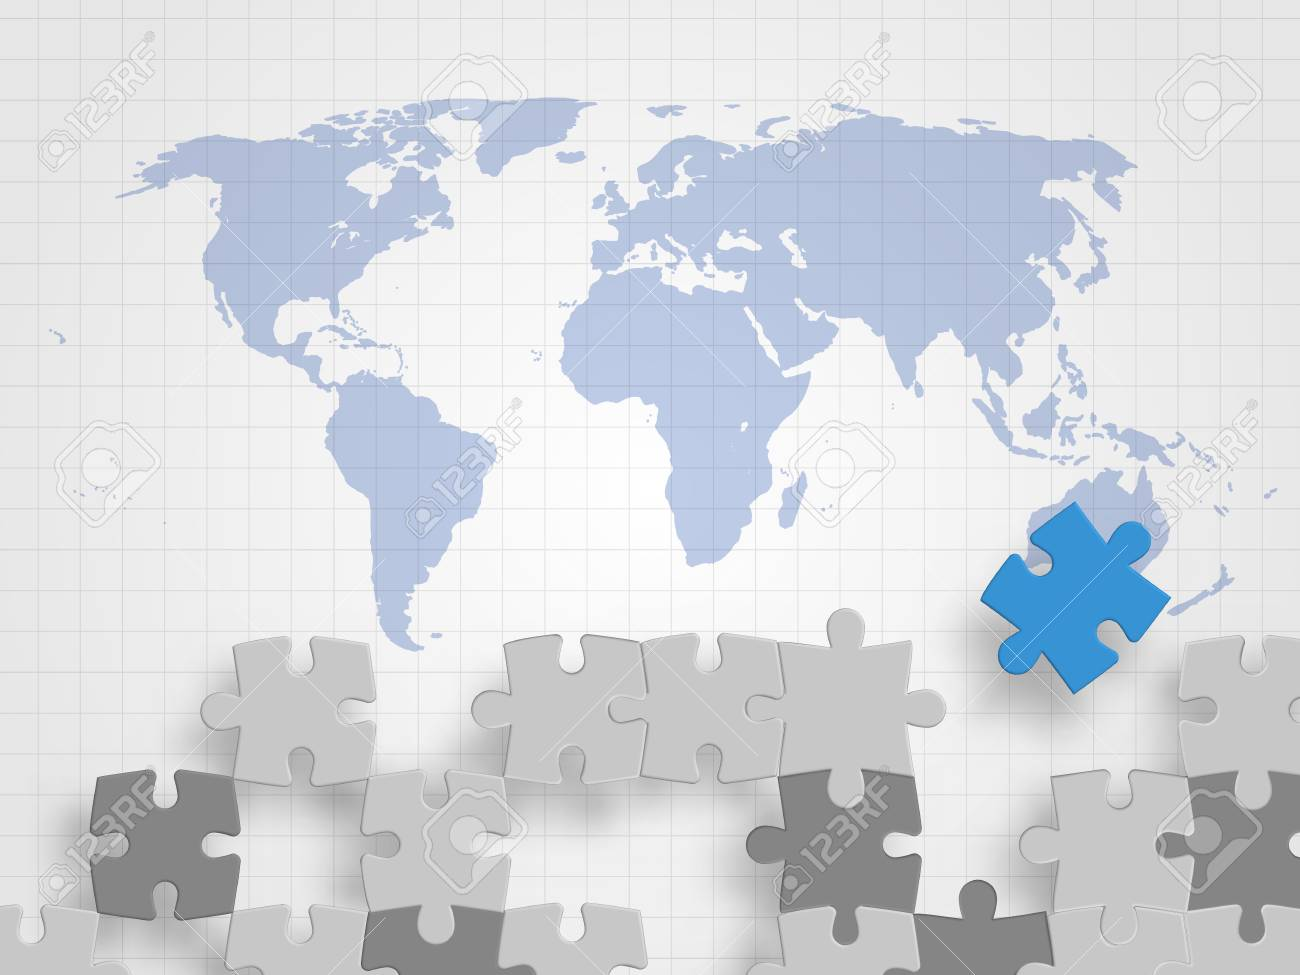 Puzzle pieces on a world map grid background royalty free cliparts puzzle pieces on a world map grid background stock vector 97227935 gumiabroncs Image collections